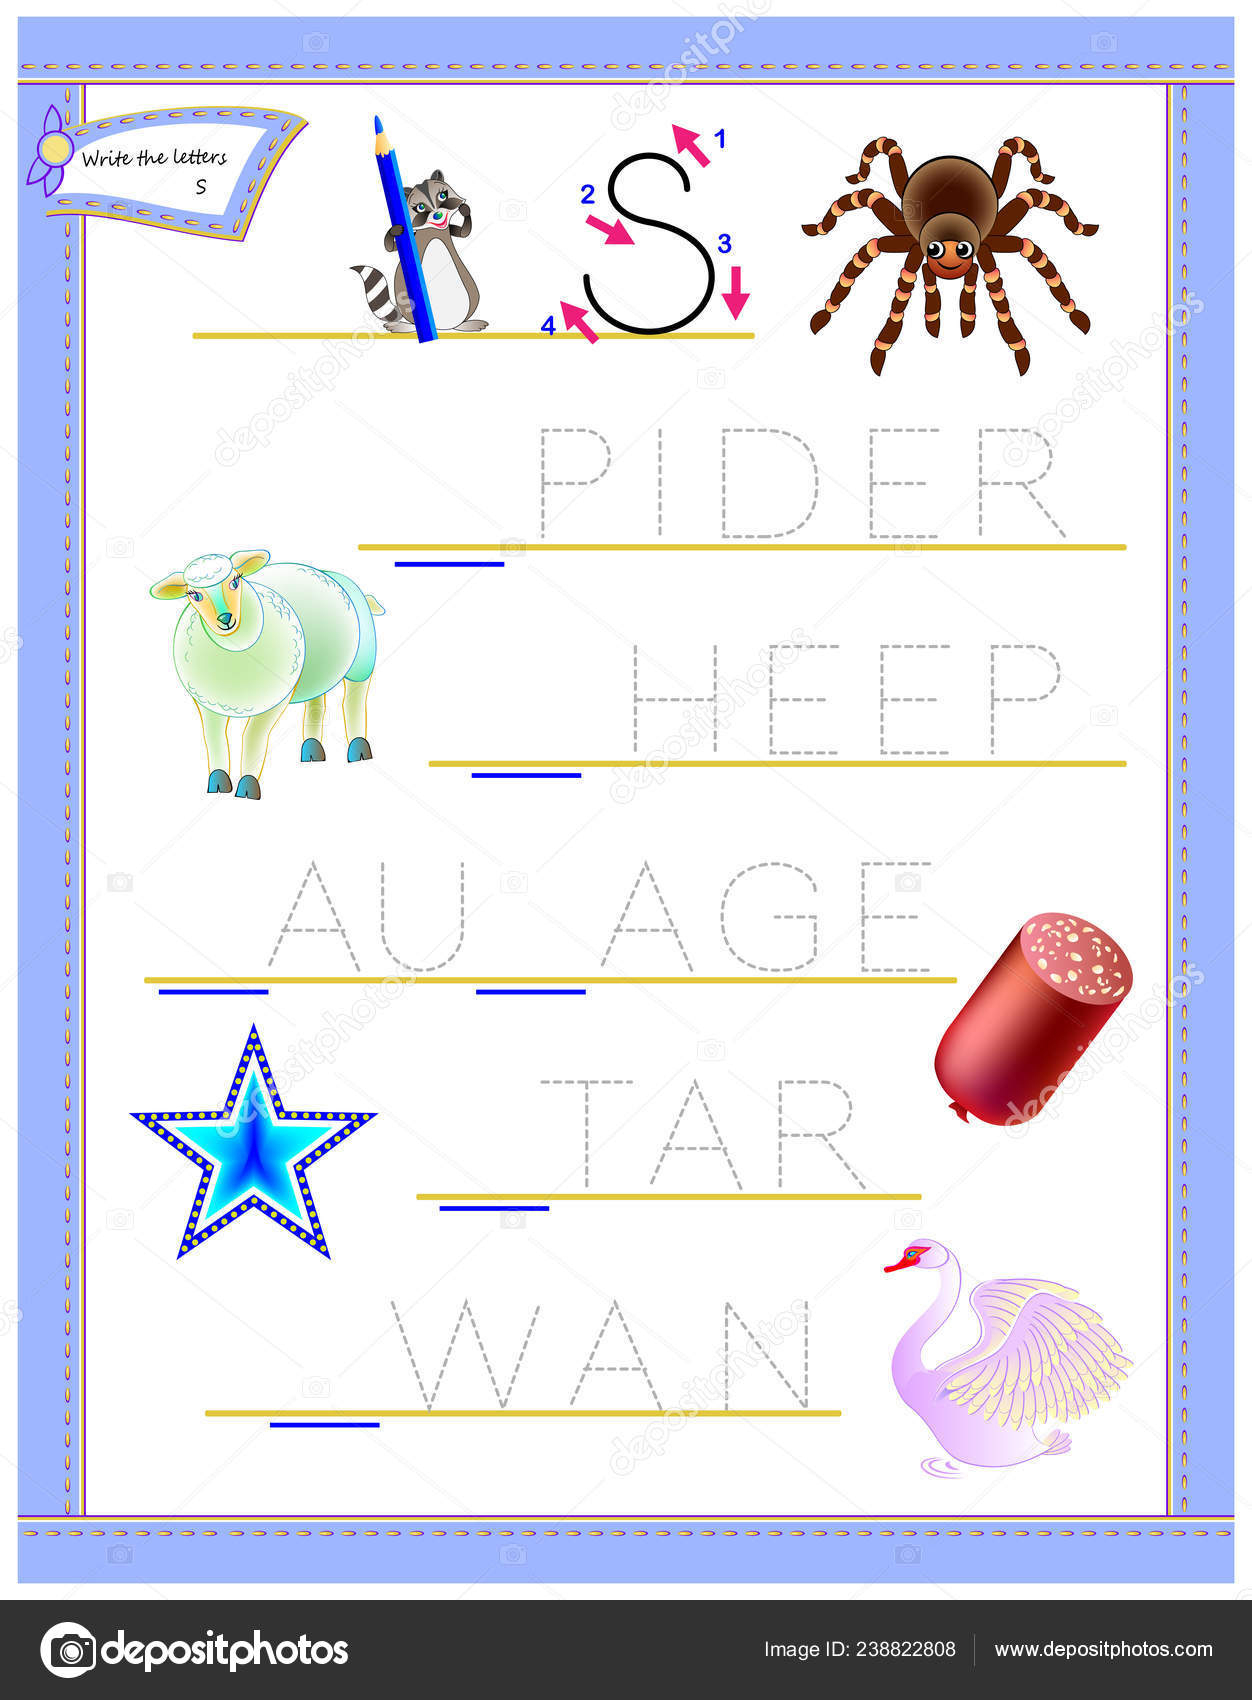 Tracing Letter Study English Alphabet Printable Worksheet regarding Children's Tracing Letters